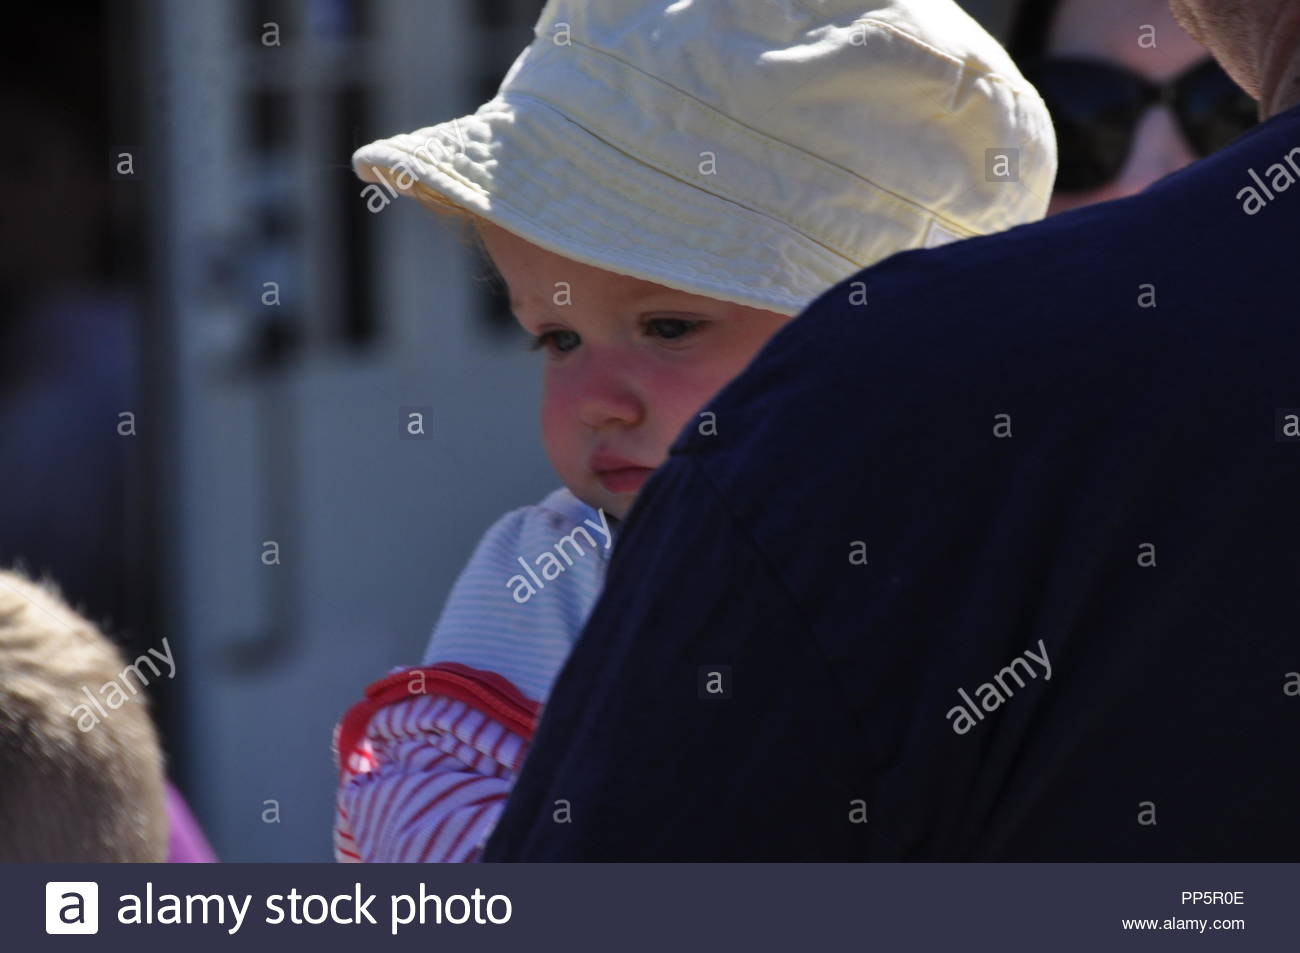 This fair-skinned baby being held by her father was seen at the Kimmel Orchard Apple Festival in Nebraska City, Nebraska. - Stock Image